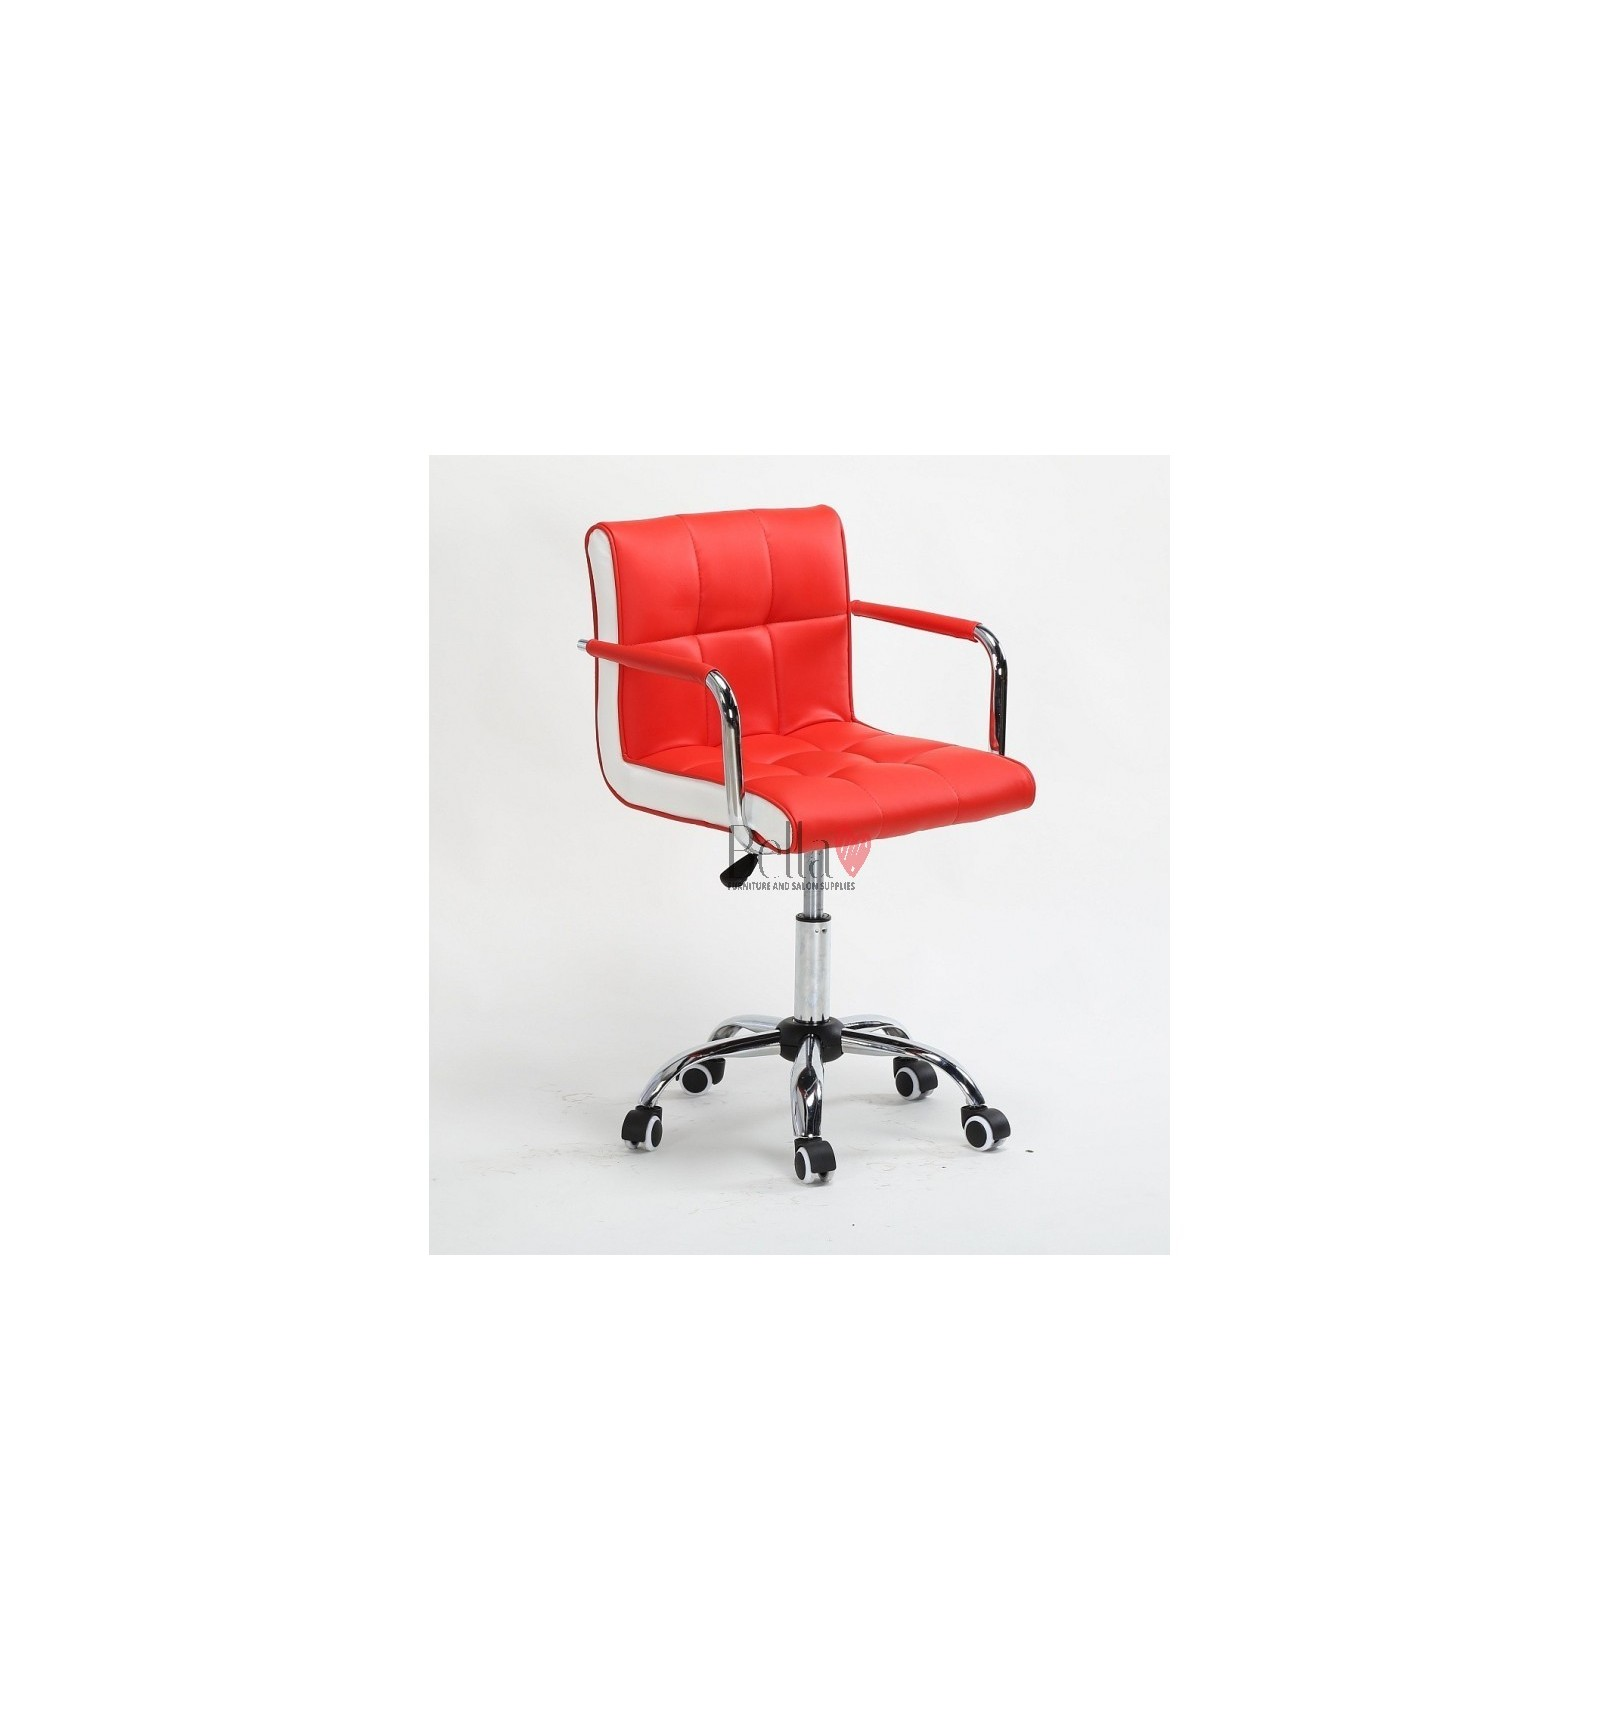 Chair On Wheels Red Nail Salon Chairs For Sale Stylish Chairs For Nail Salons Dublin